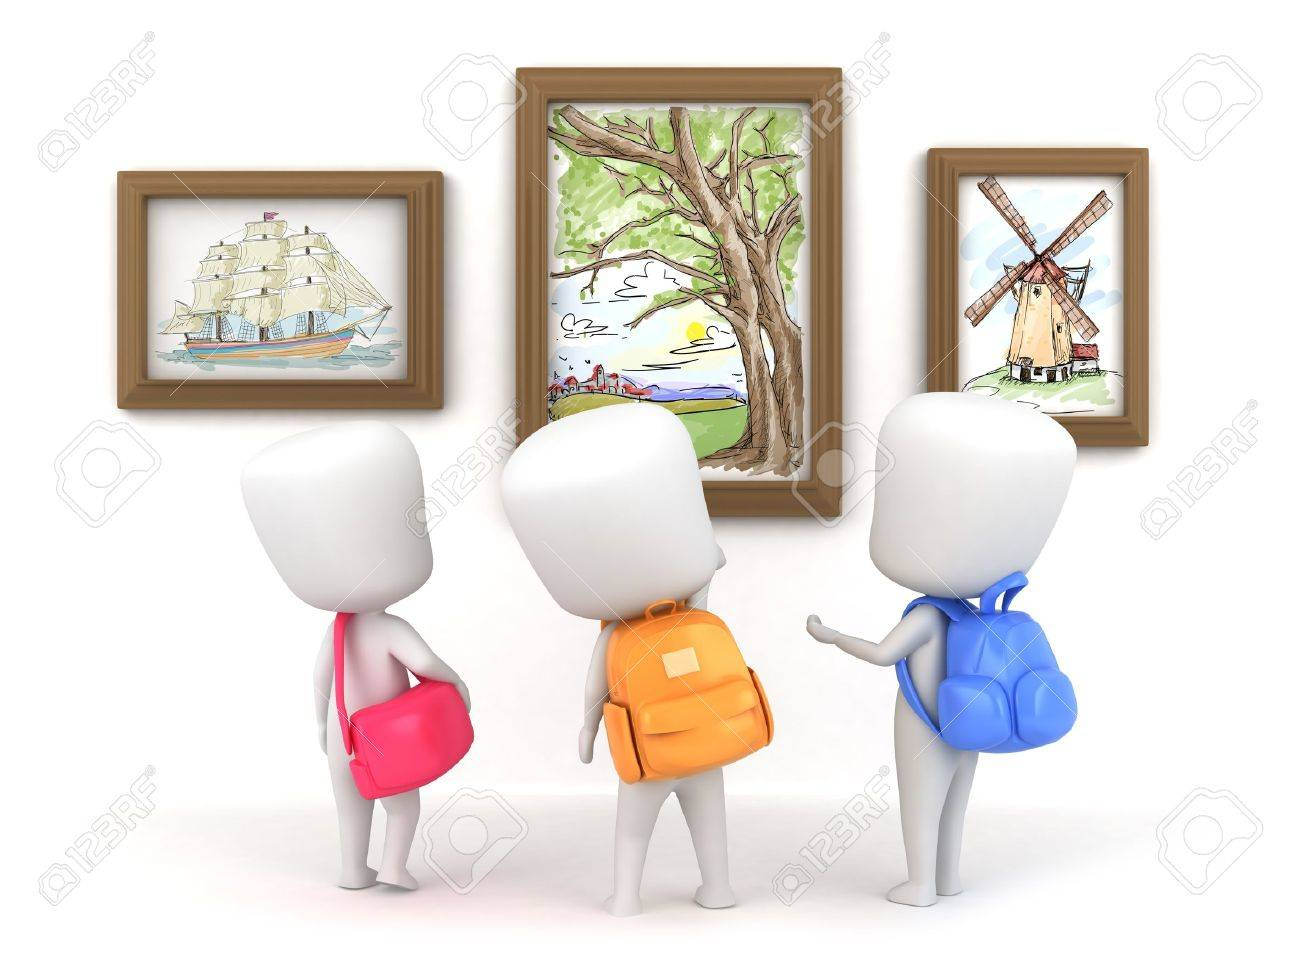 3d illustration of kids in an art museum stock photo picture and